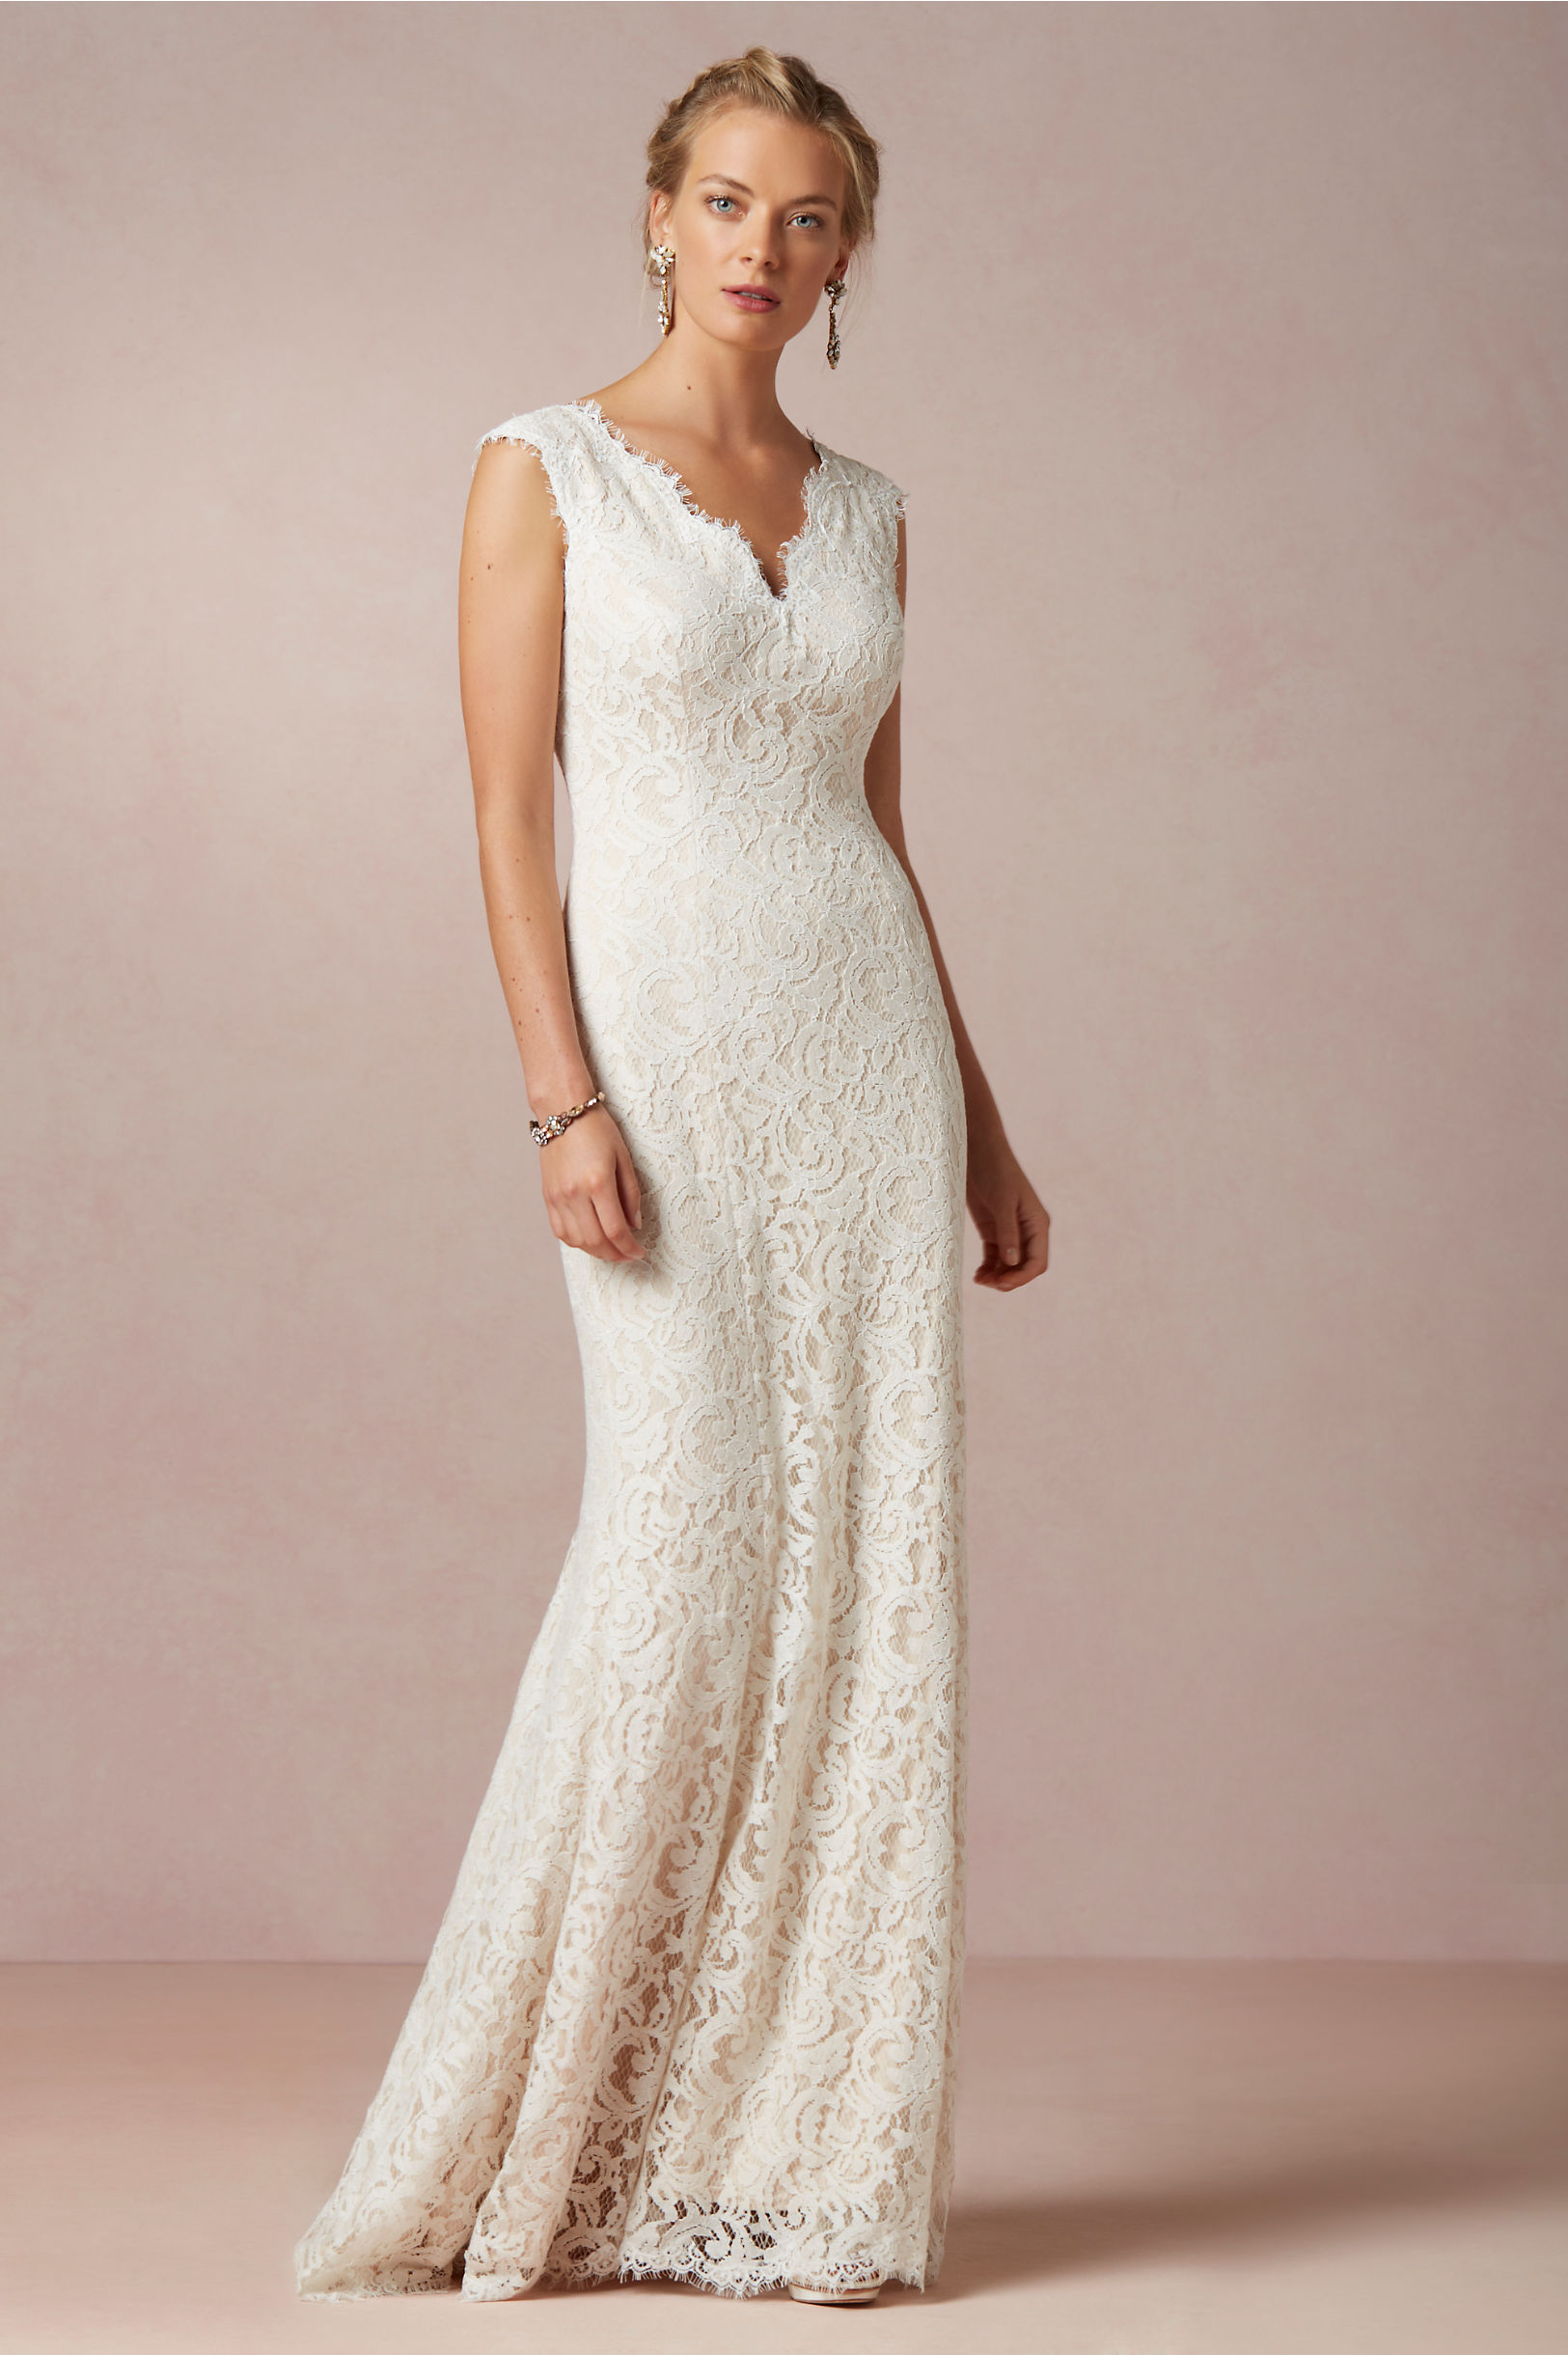 Margeaux gown in sale bhldn ivory margeaux gown bhldn ombrellifo Images